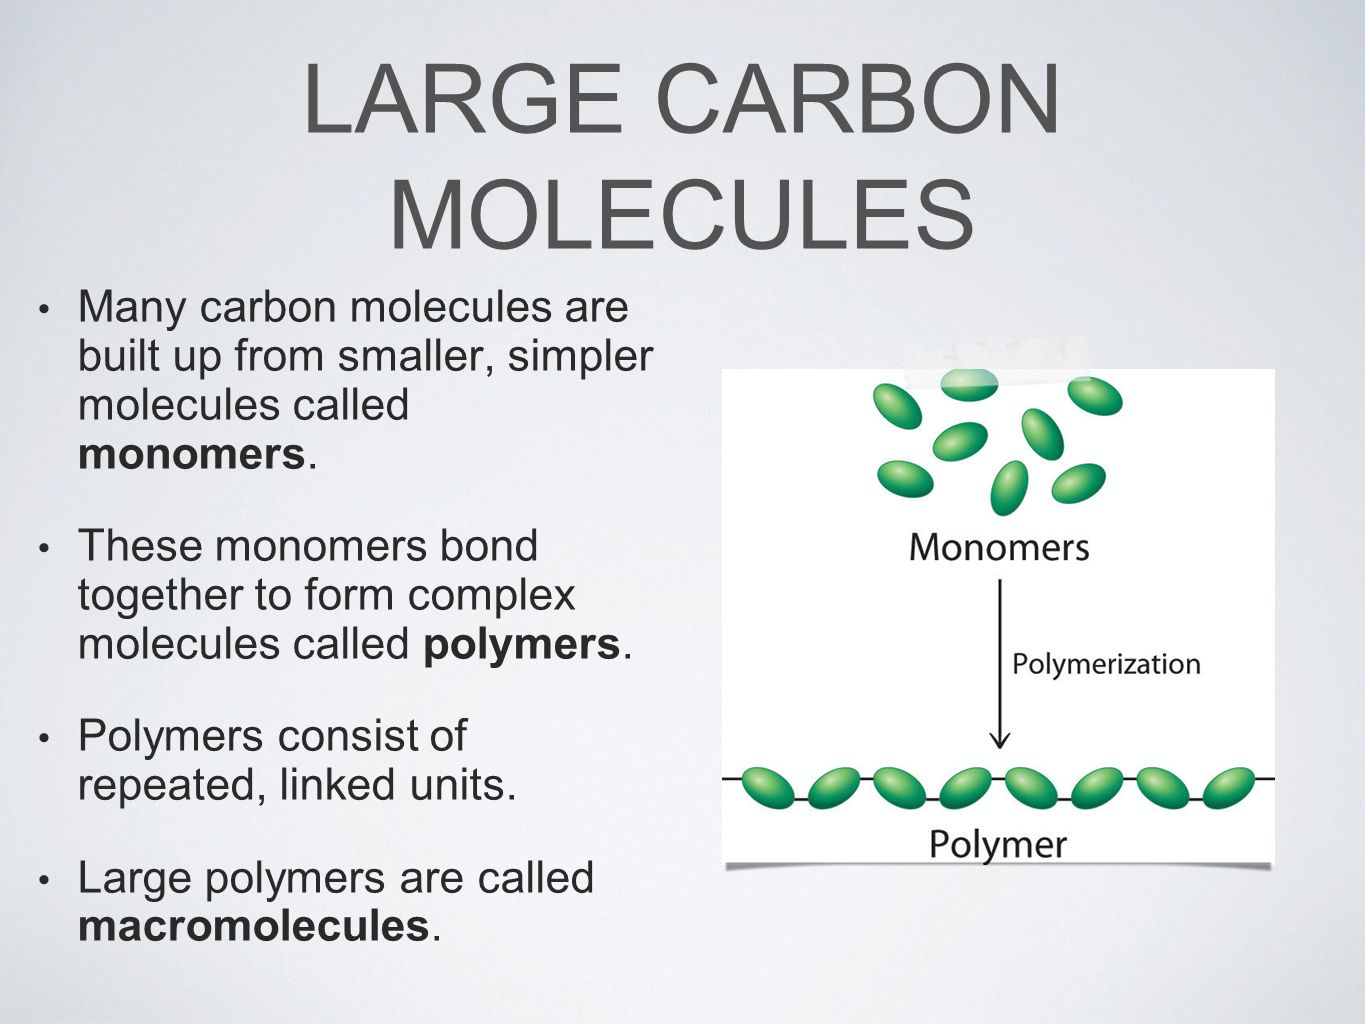 LARGE CARBON MOLECULES Many carbon molecules are built up from smaller, simpler molecules called monomers.